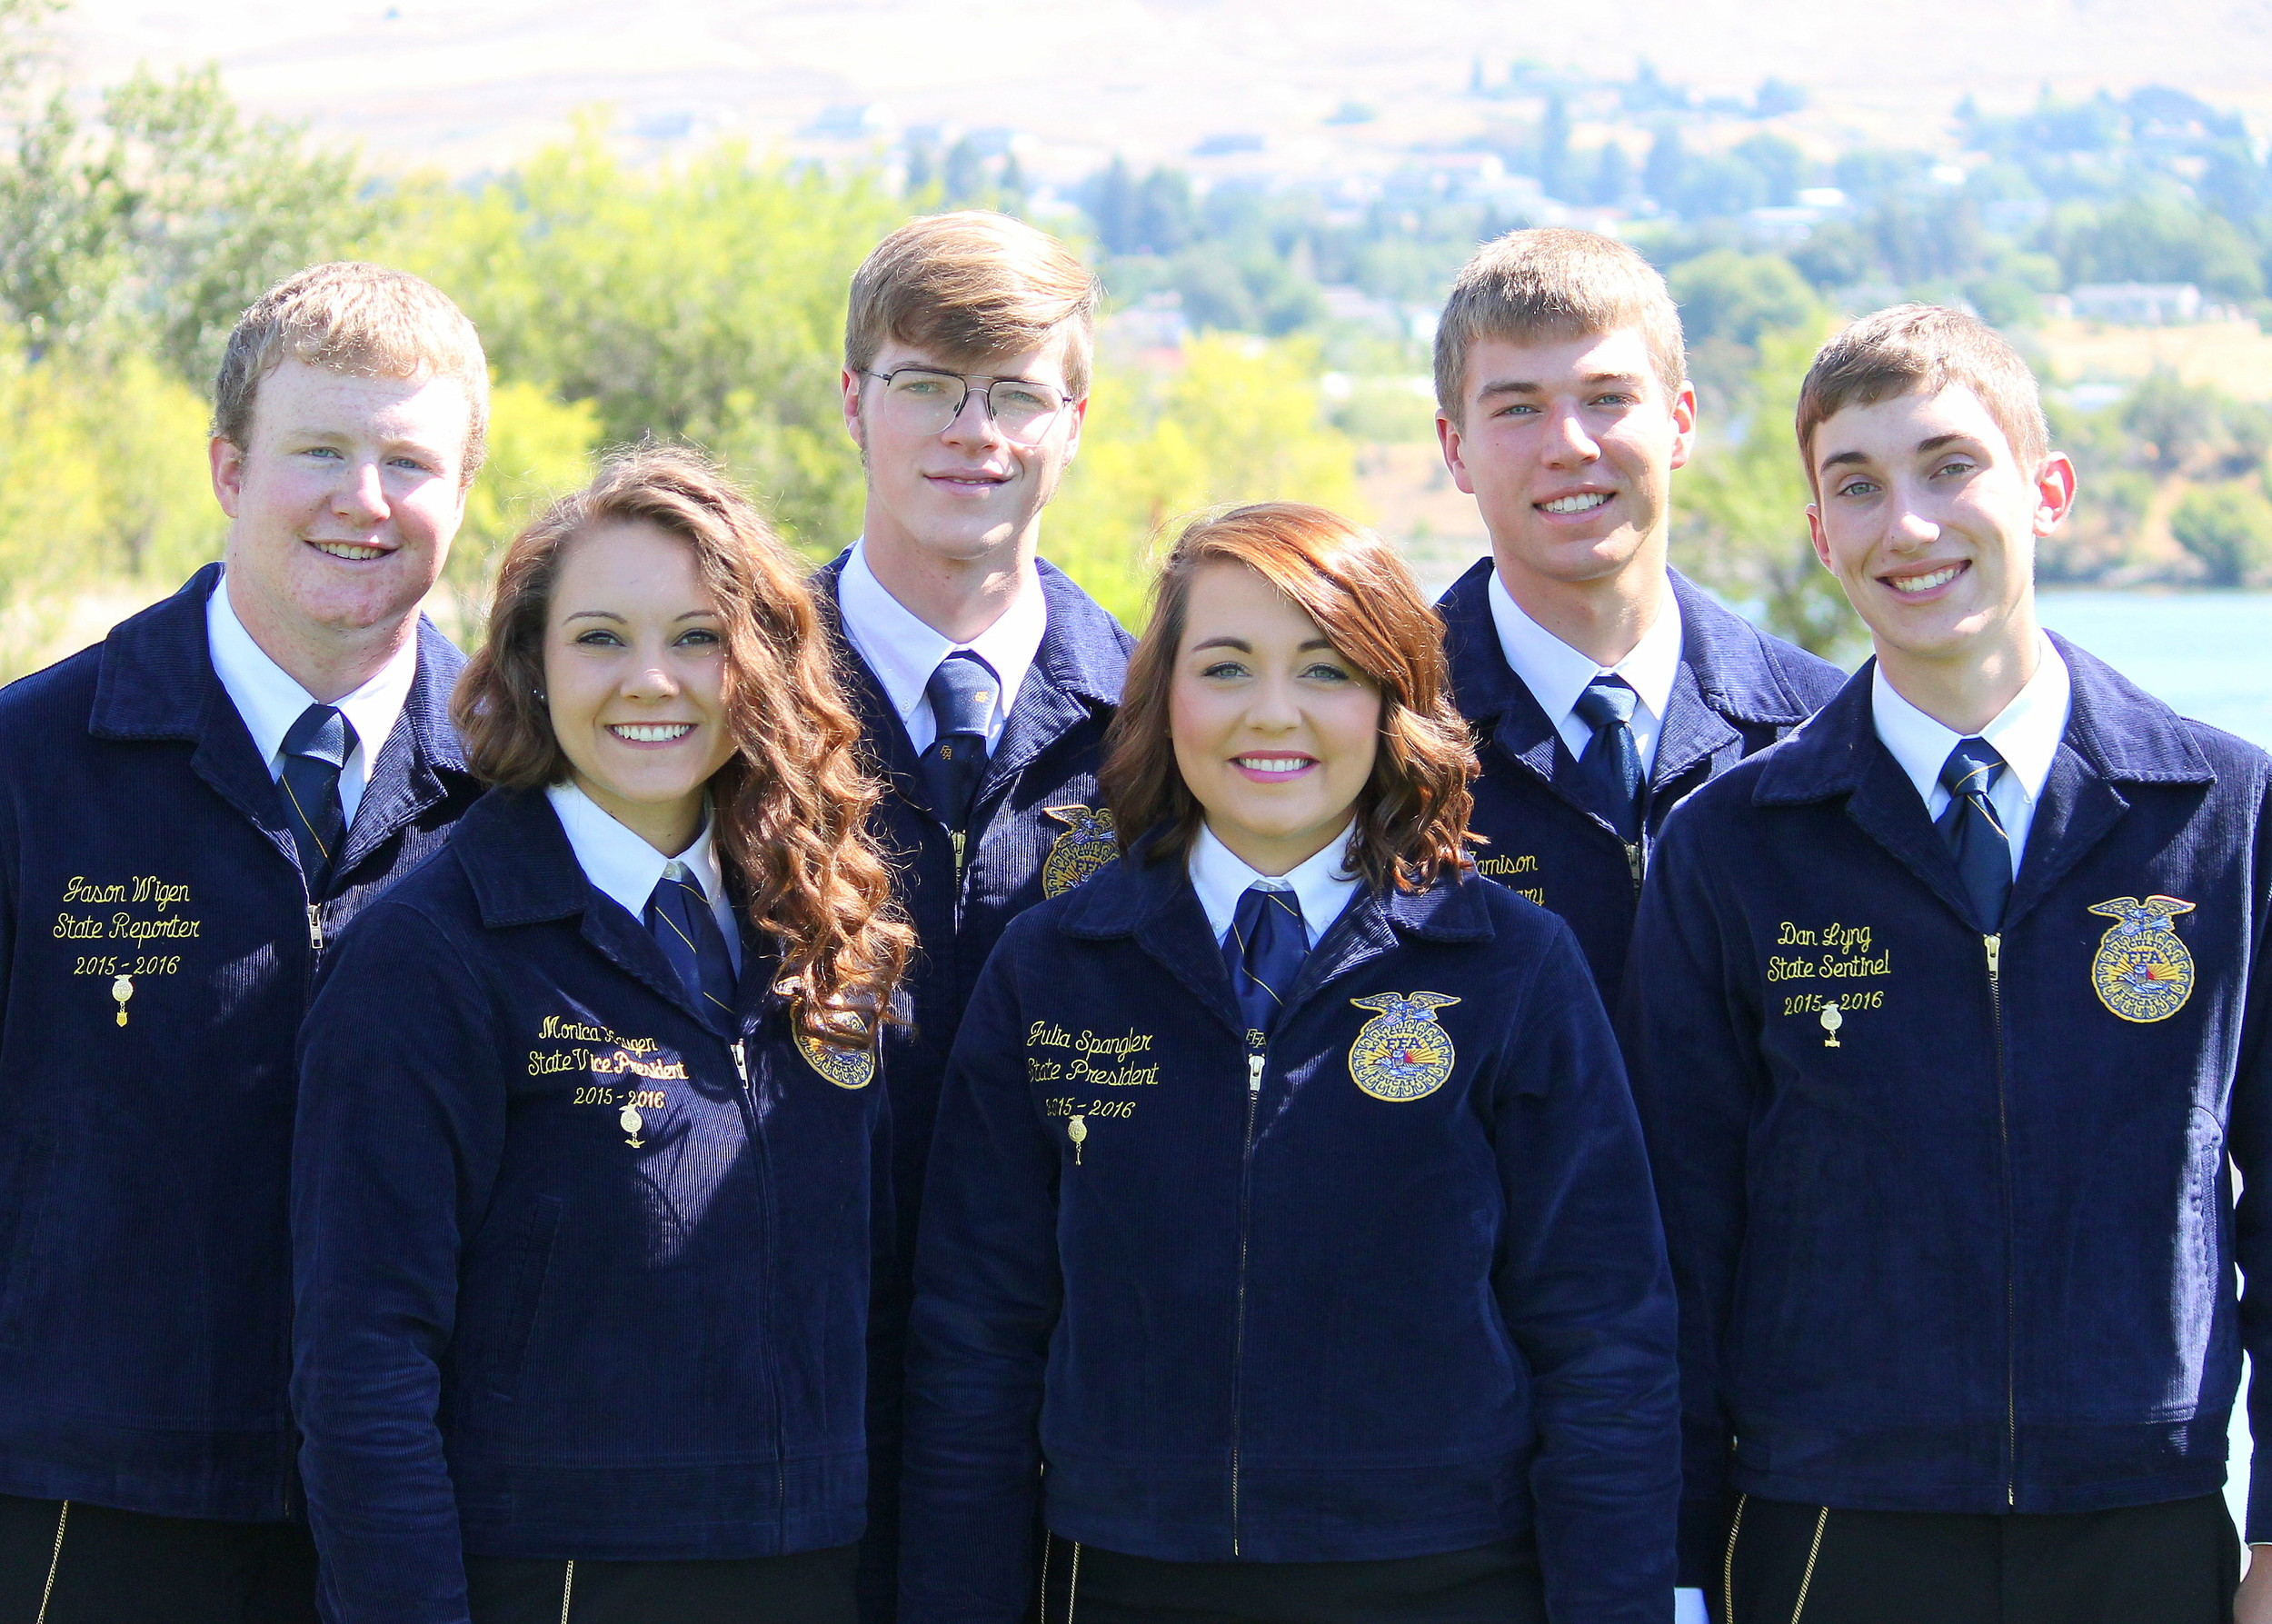 The 2015-2016 Washington FFA State Officers from left to right: Reporter Jason Wigen, Vice President Monica Haugen, Treasurer Dallas Tyus, President Julia Spangler, Secretary Mitch Jamison, Sentinel Dan Lyng.